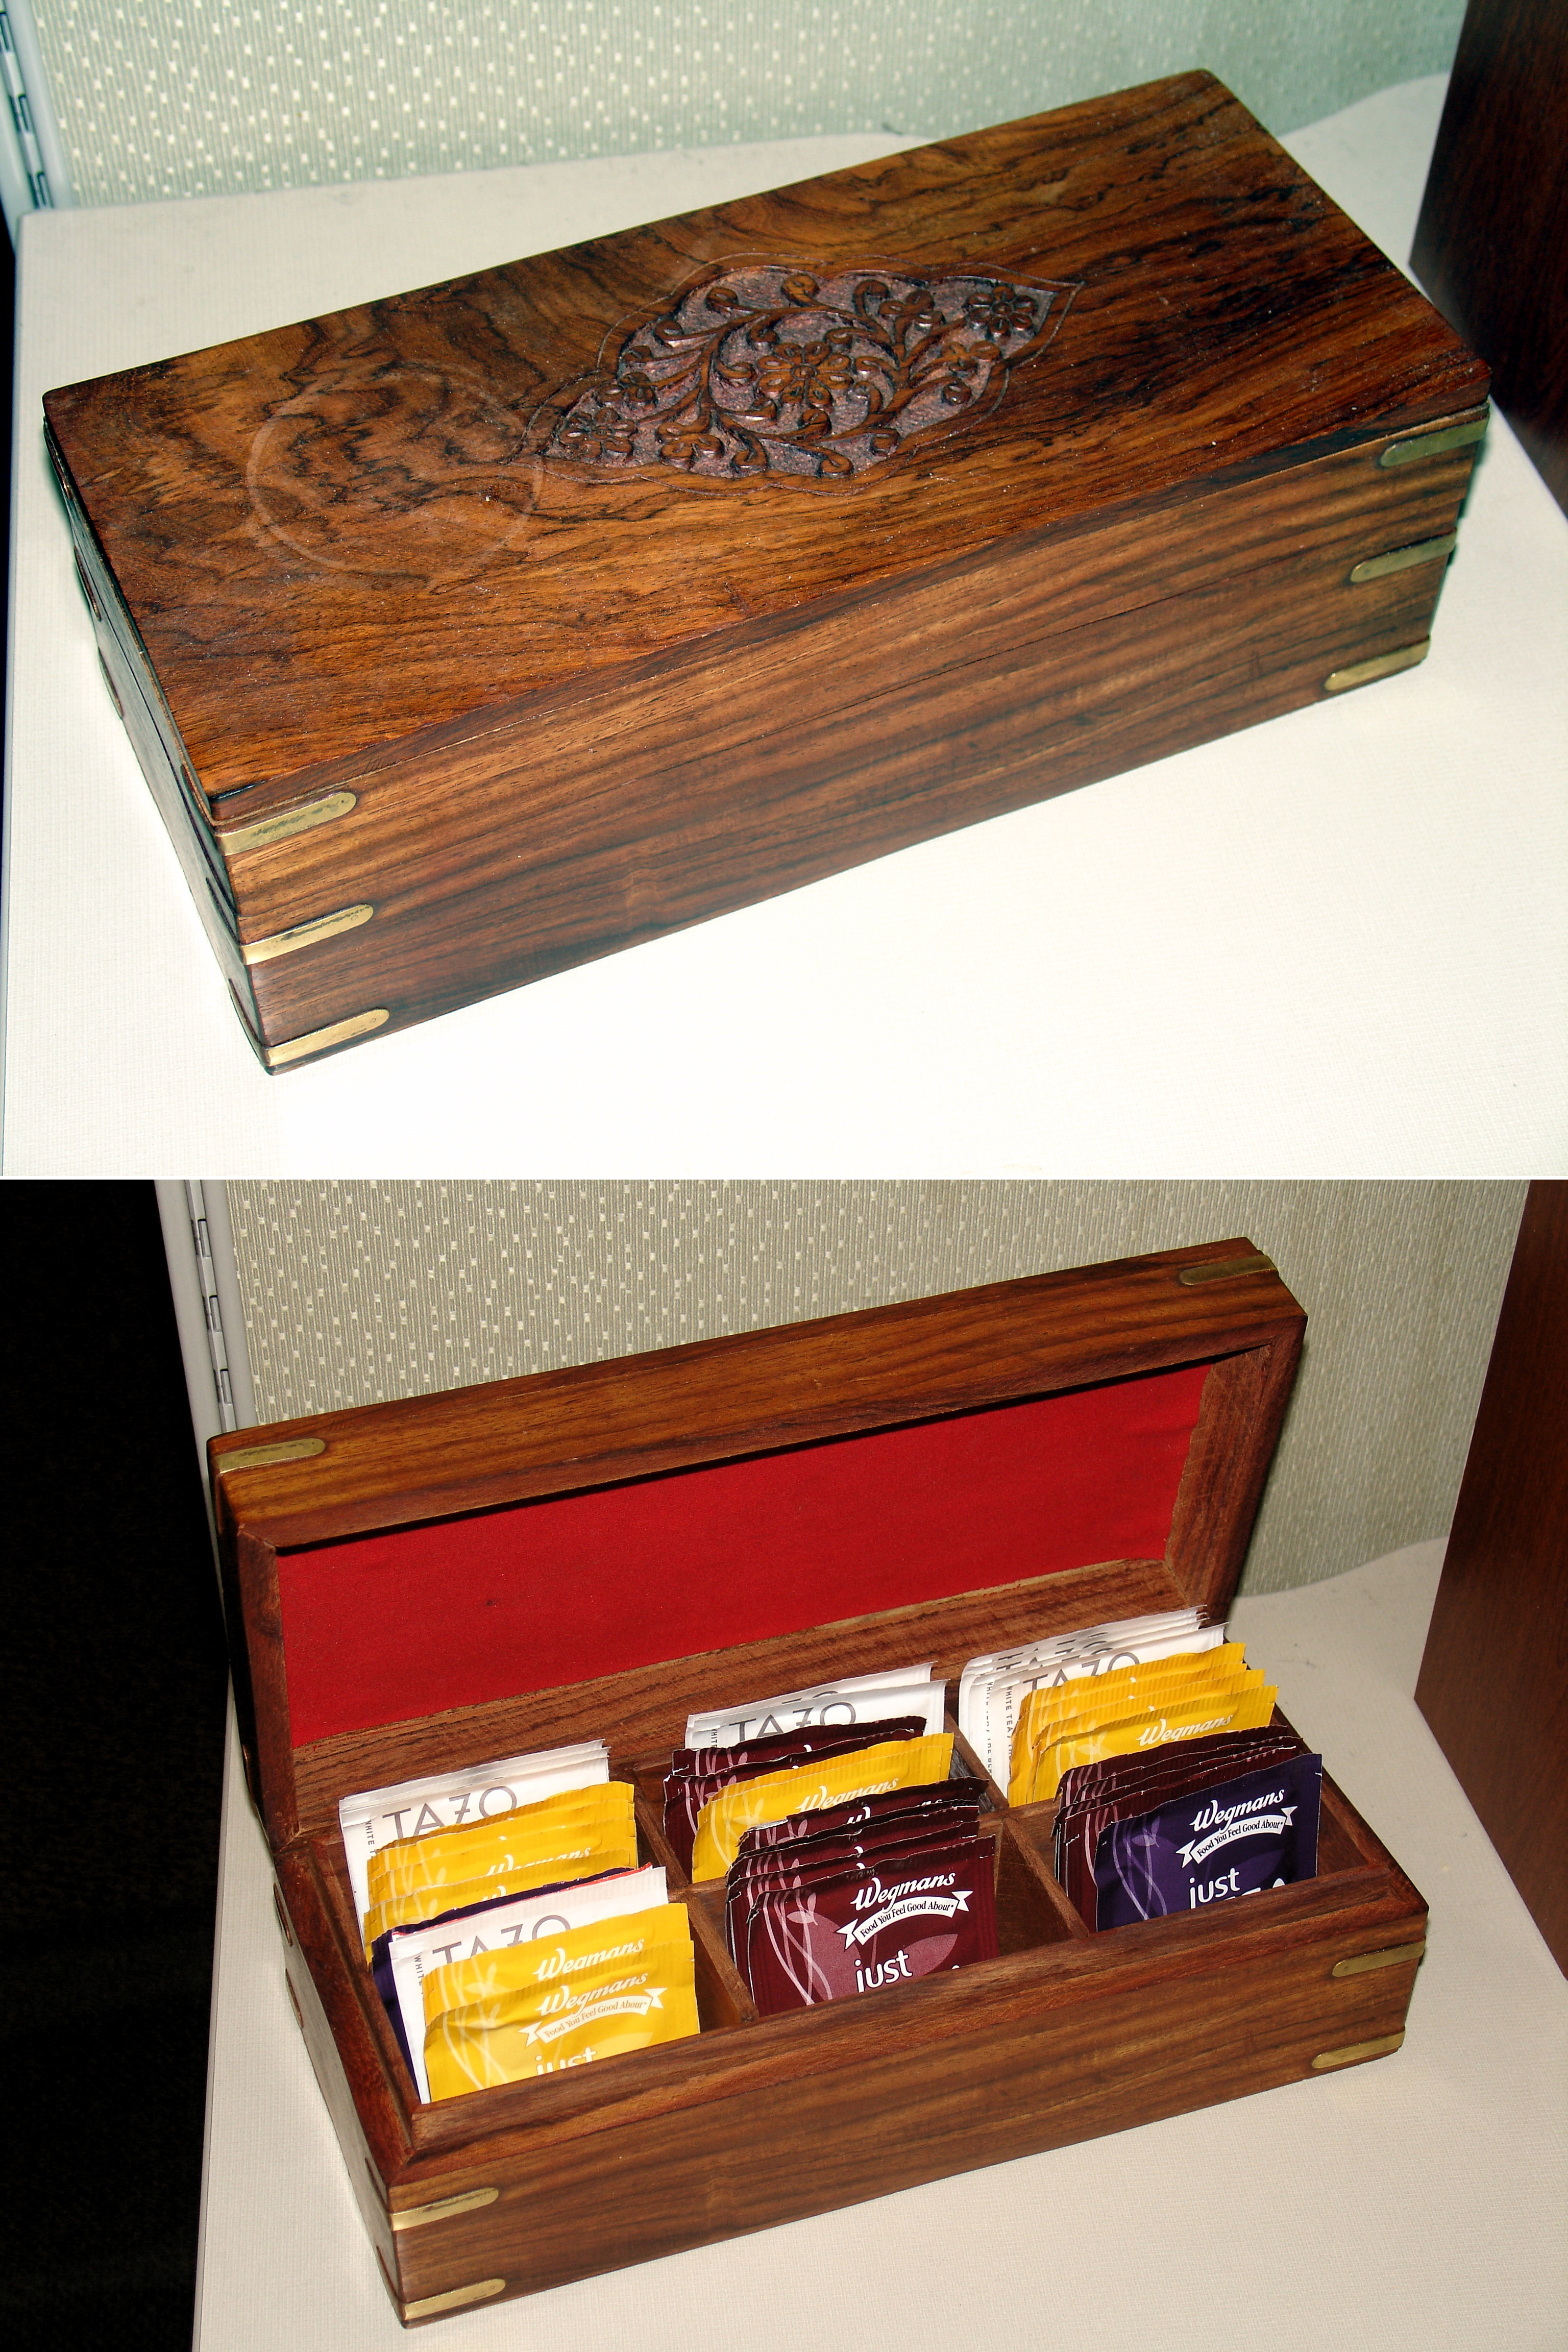 07 Engraved Tea Chest Closed and Open.JPG